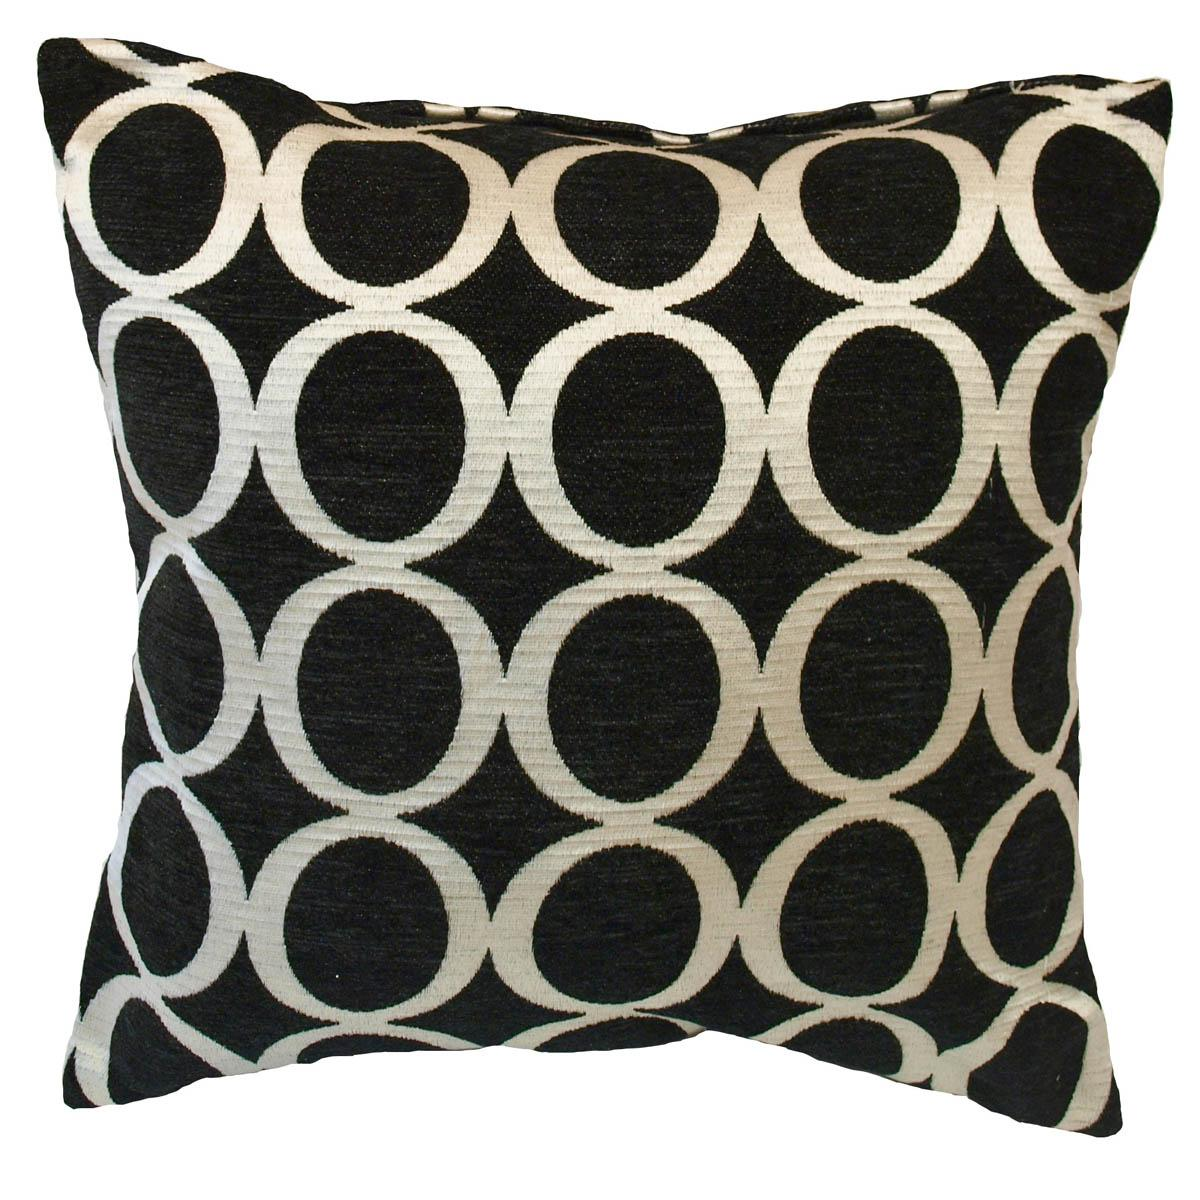 Stockists of Black OH! Filled Cushion